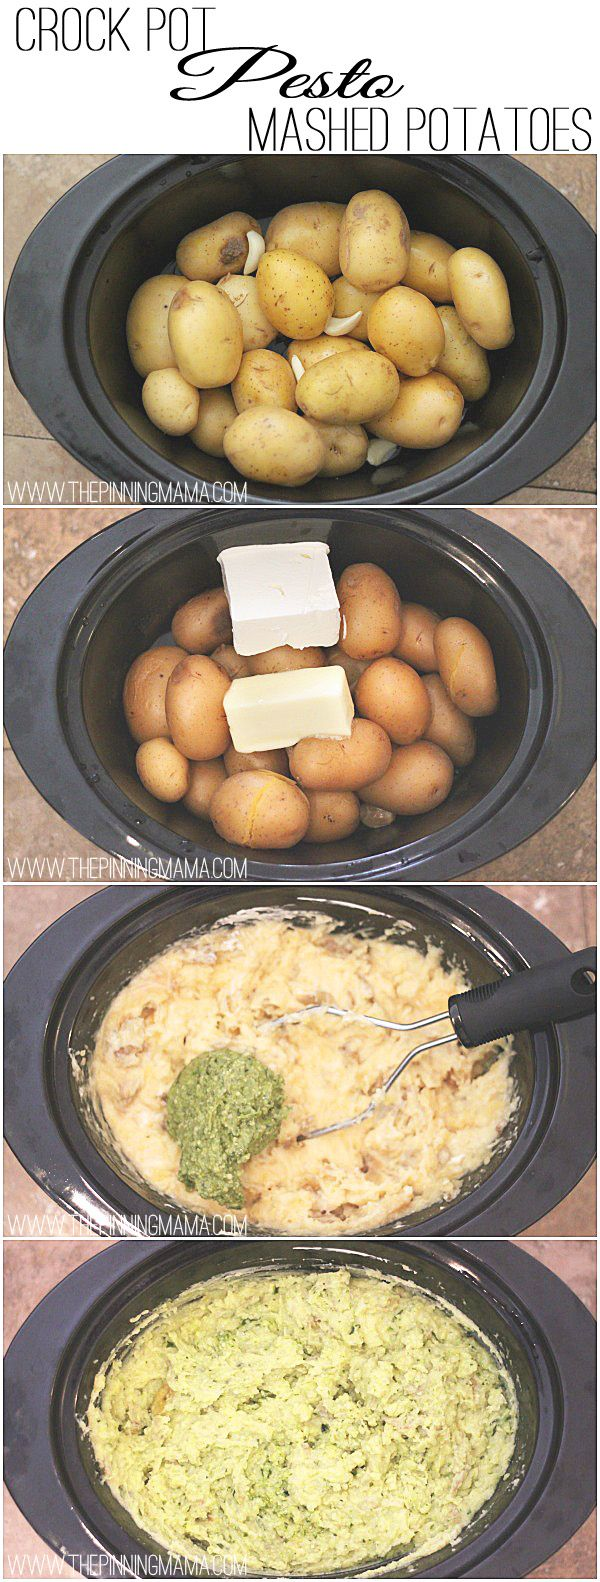 Only 6 ingredients and 4 steps to amazingly delicious Pesto Mashed Potatoes made in your crock pot! So EASY!  Recipe via thepinningmama.com.